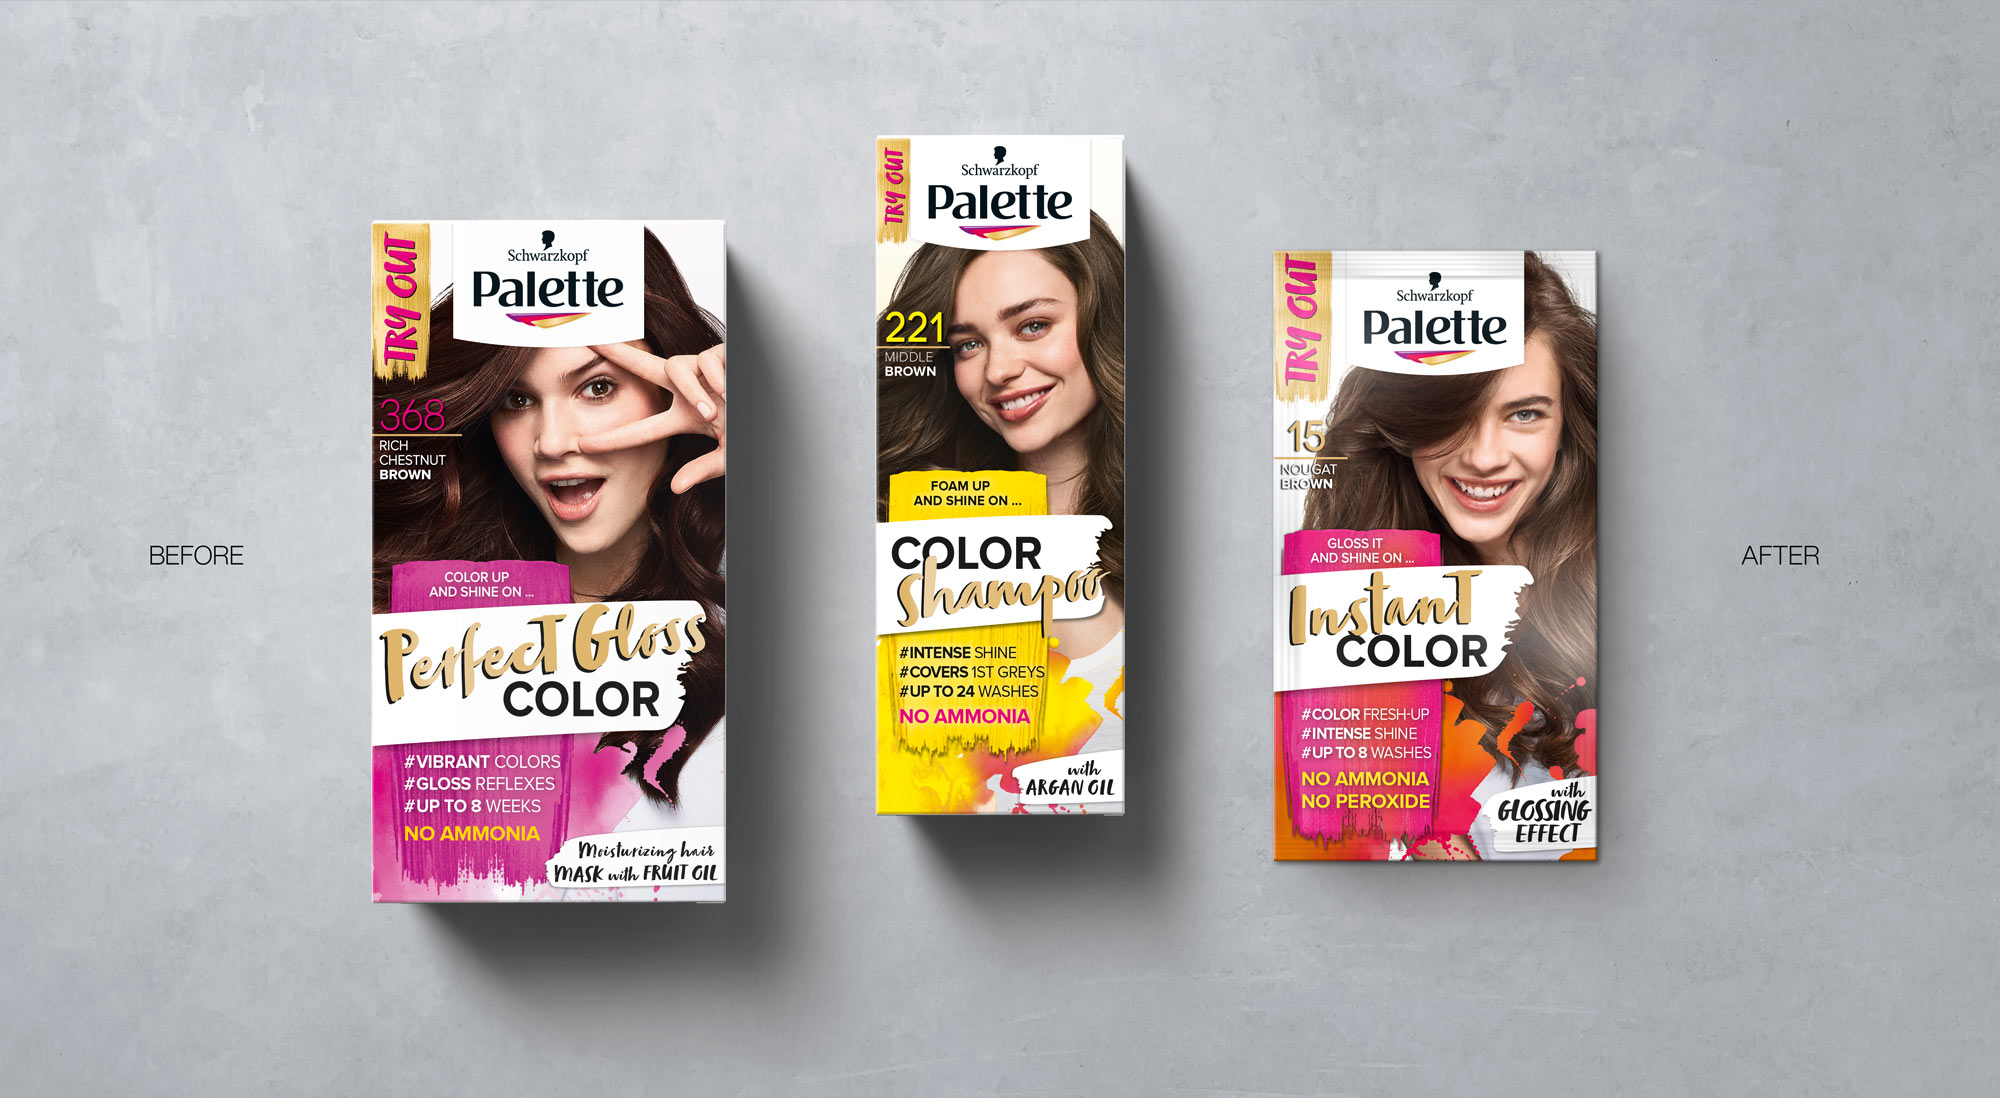 Schwarzkopf Palette Hair Coloration Packaging Designs on Concrete, Relaunch Design 2018